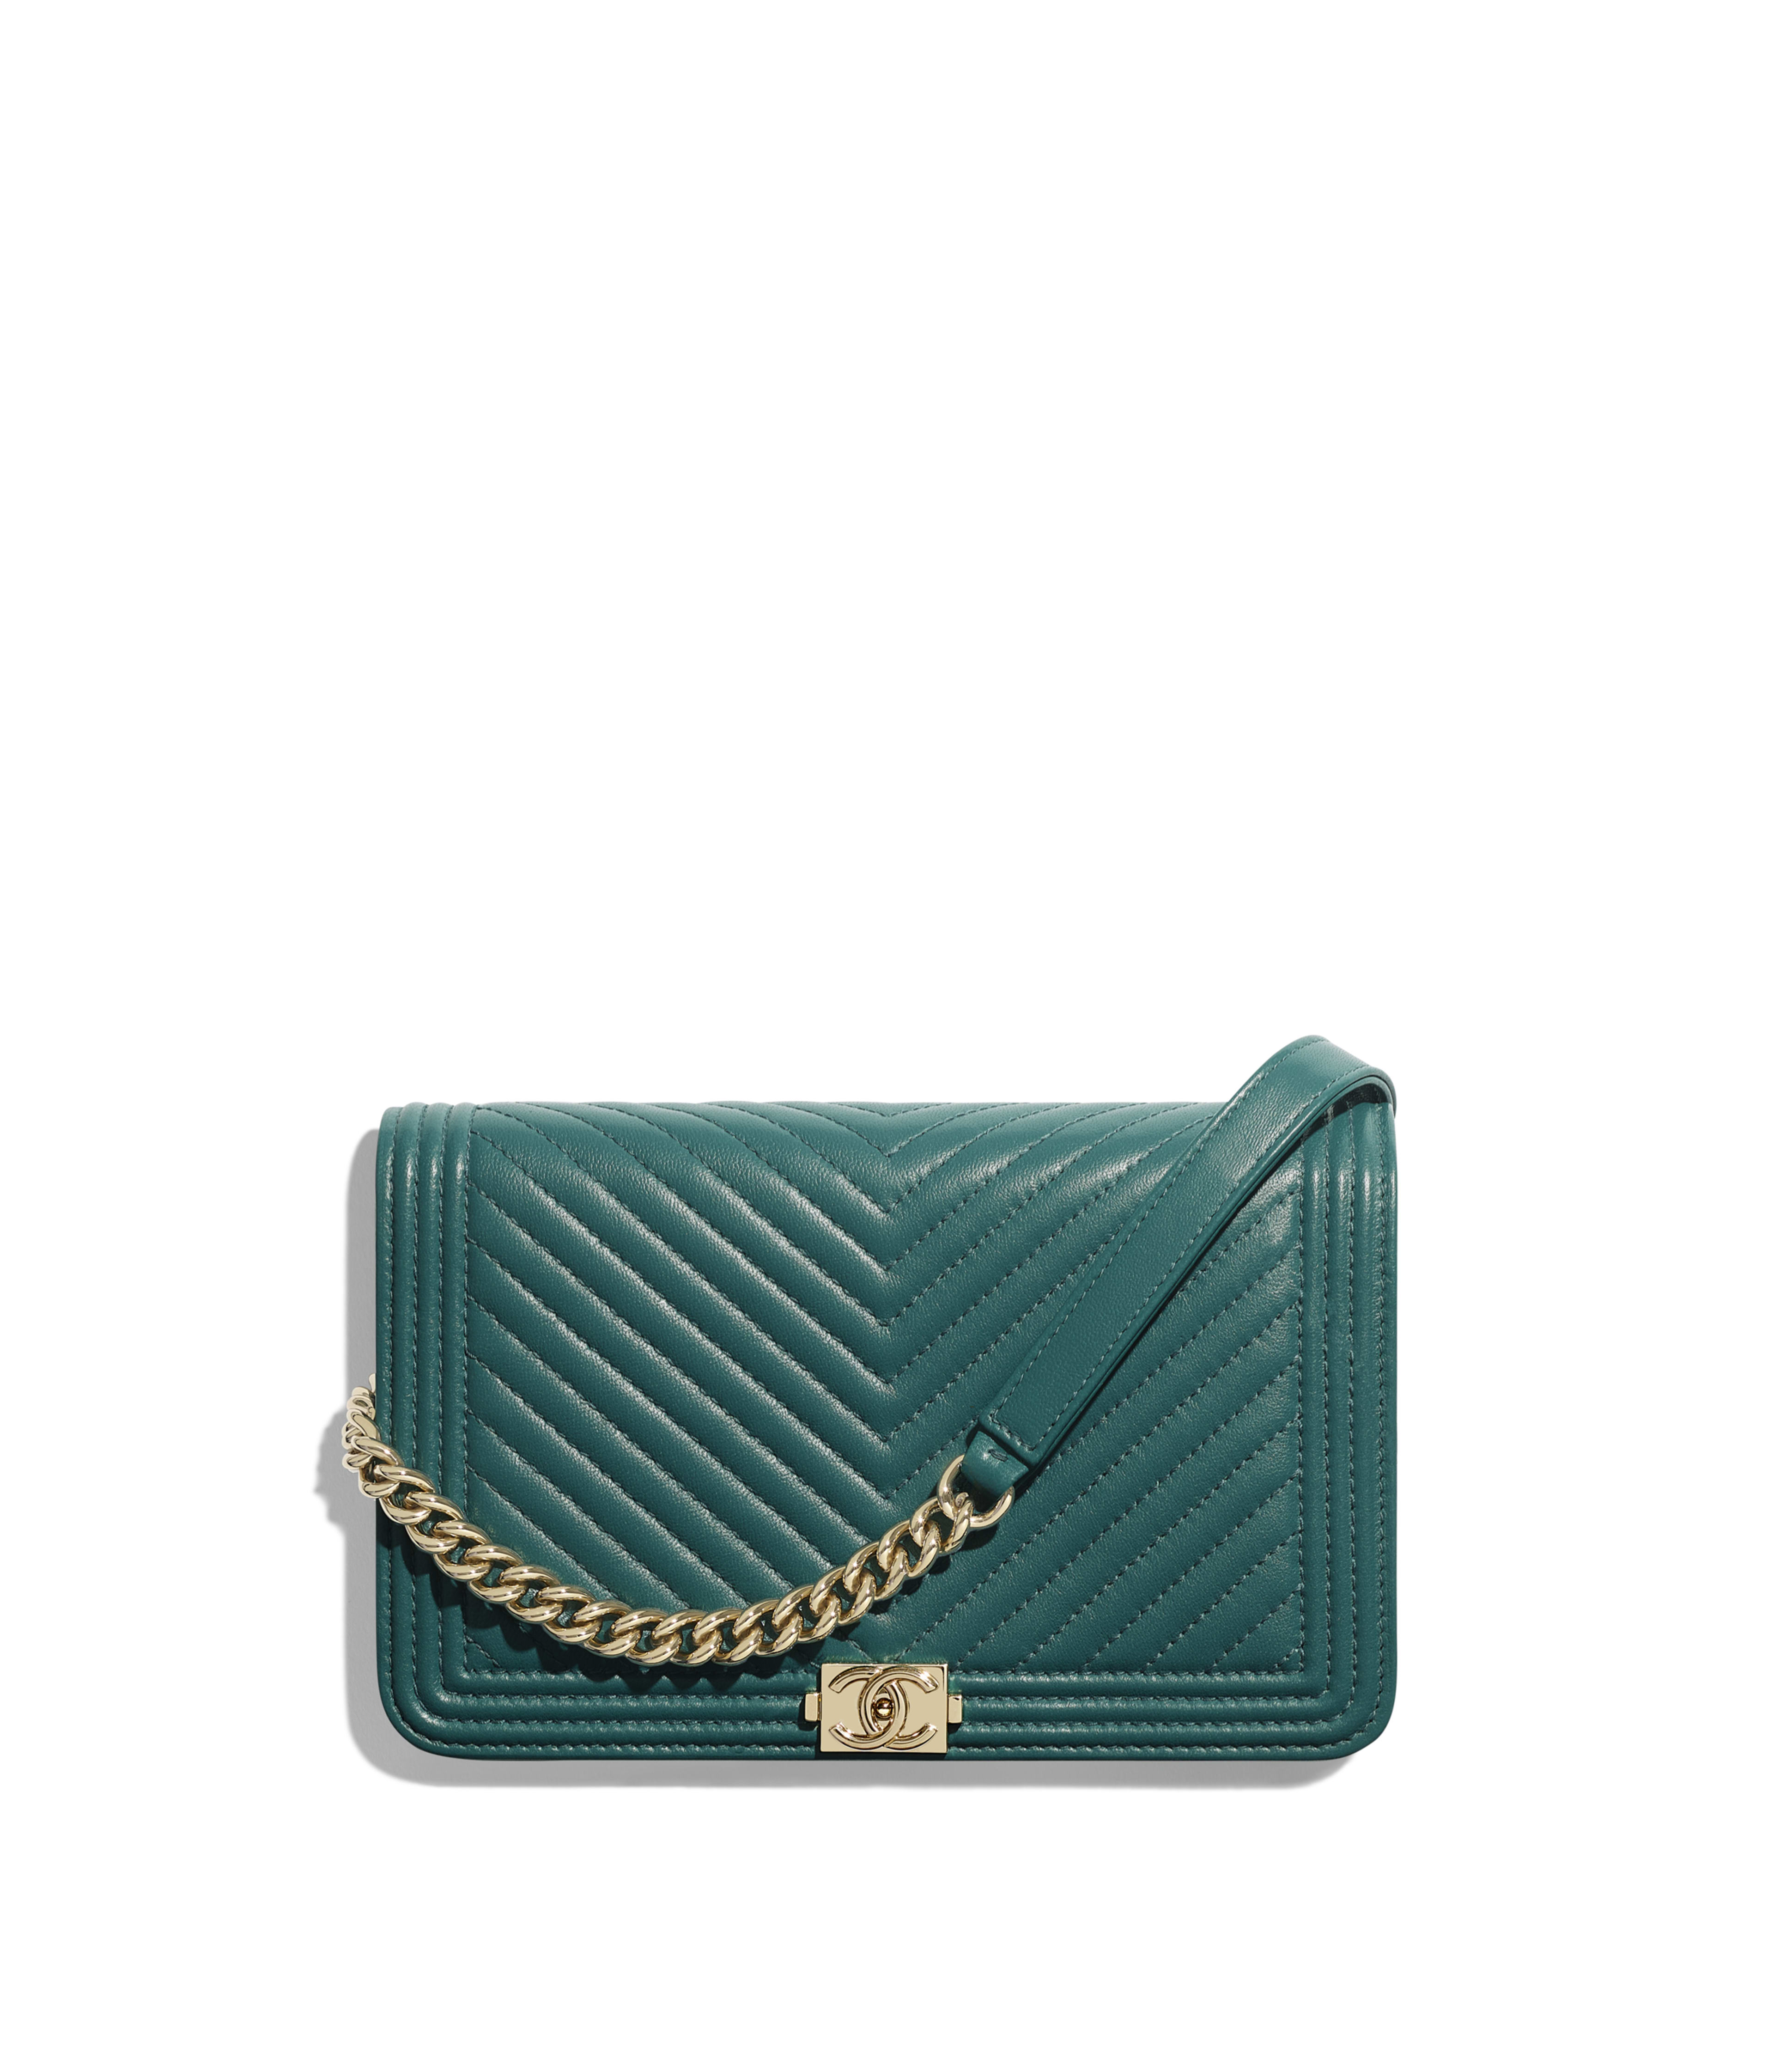 6becf2853d9d BOY CHANEL Wallet on Chain Lambskin & Gold-Tone Metal, Turquoise Ref.  A81969Y25539N0415